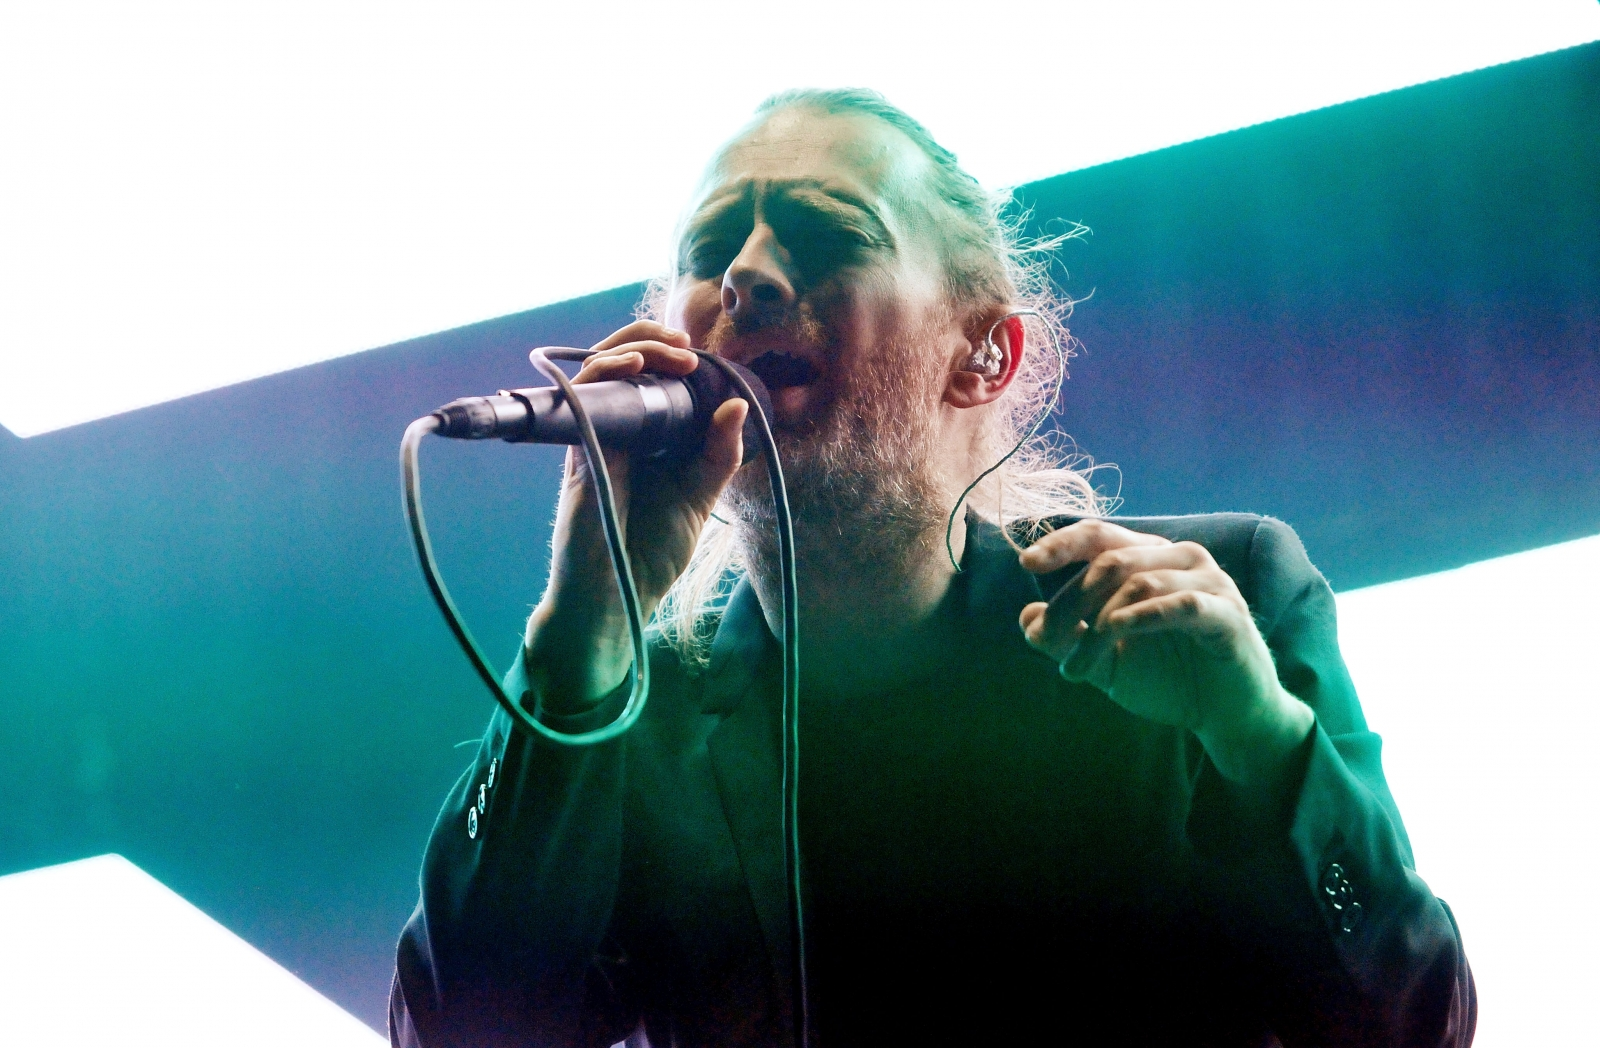 Thom Yorke shares Radiohead fans' anger over UK tour ticket sales